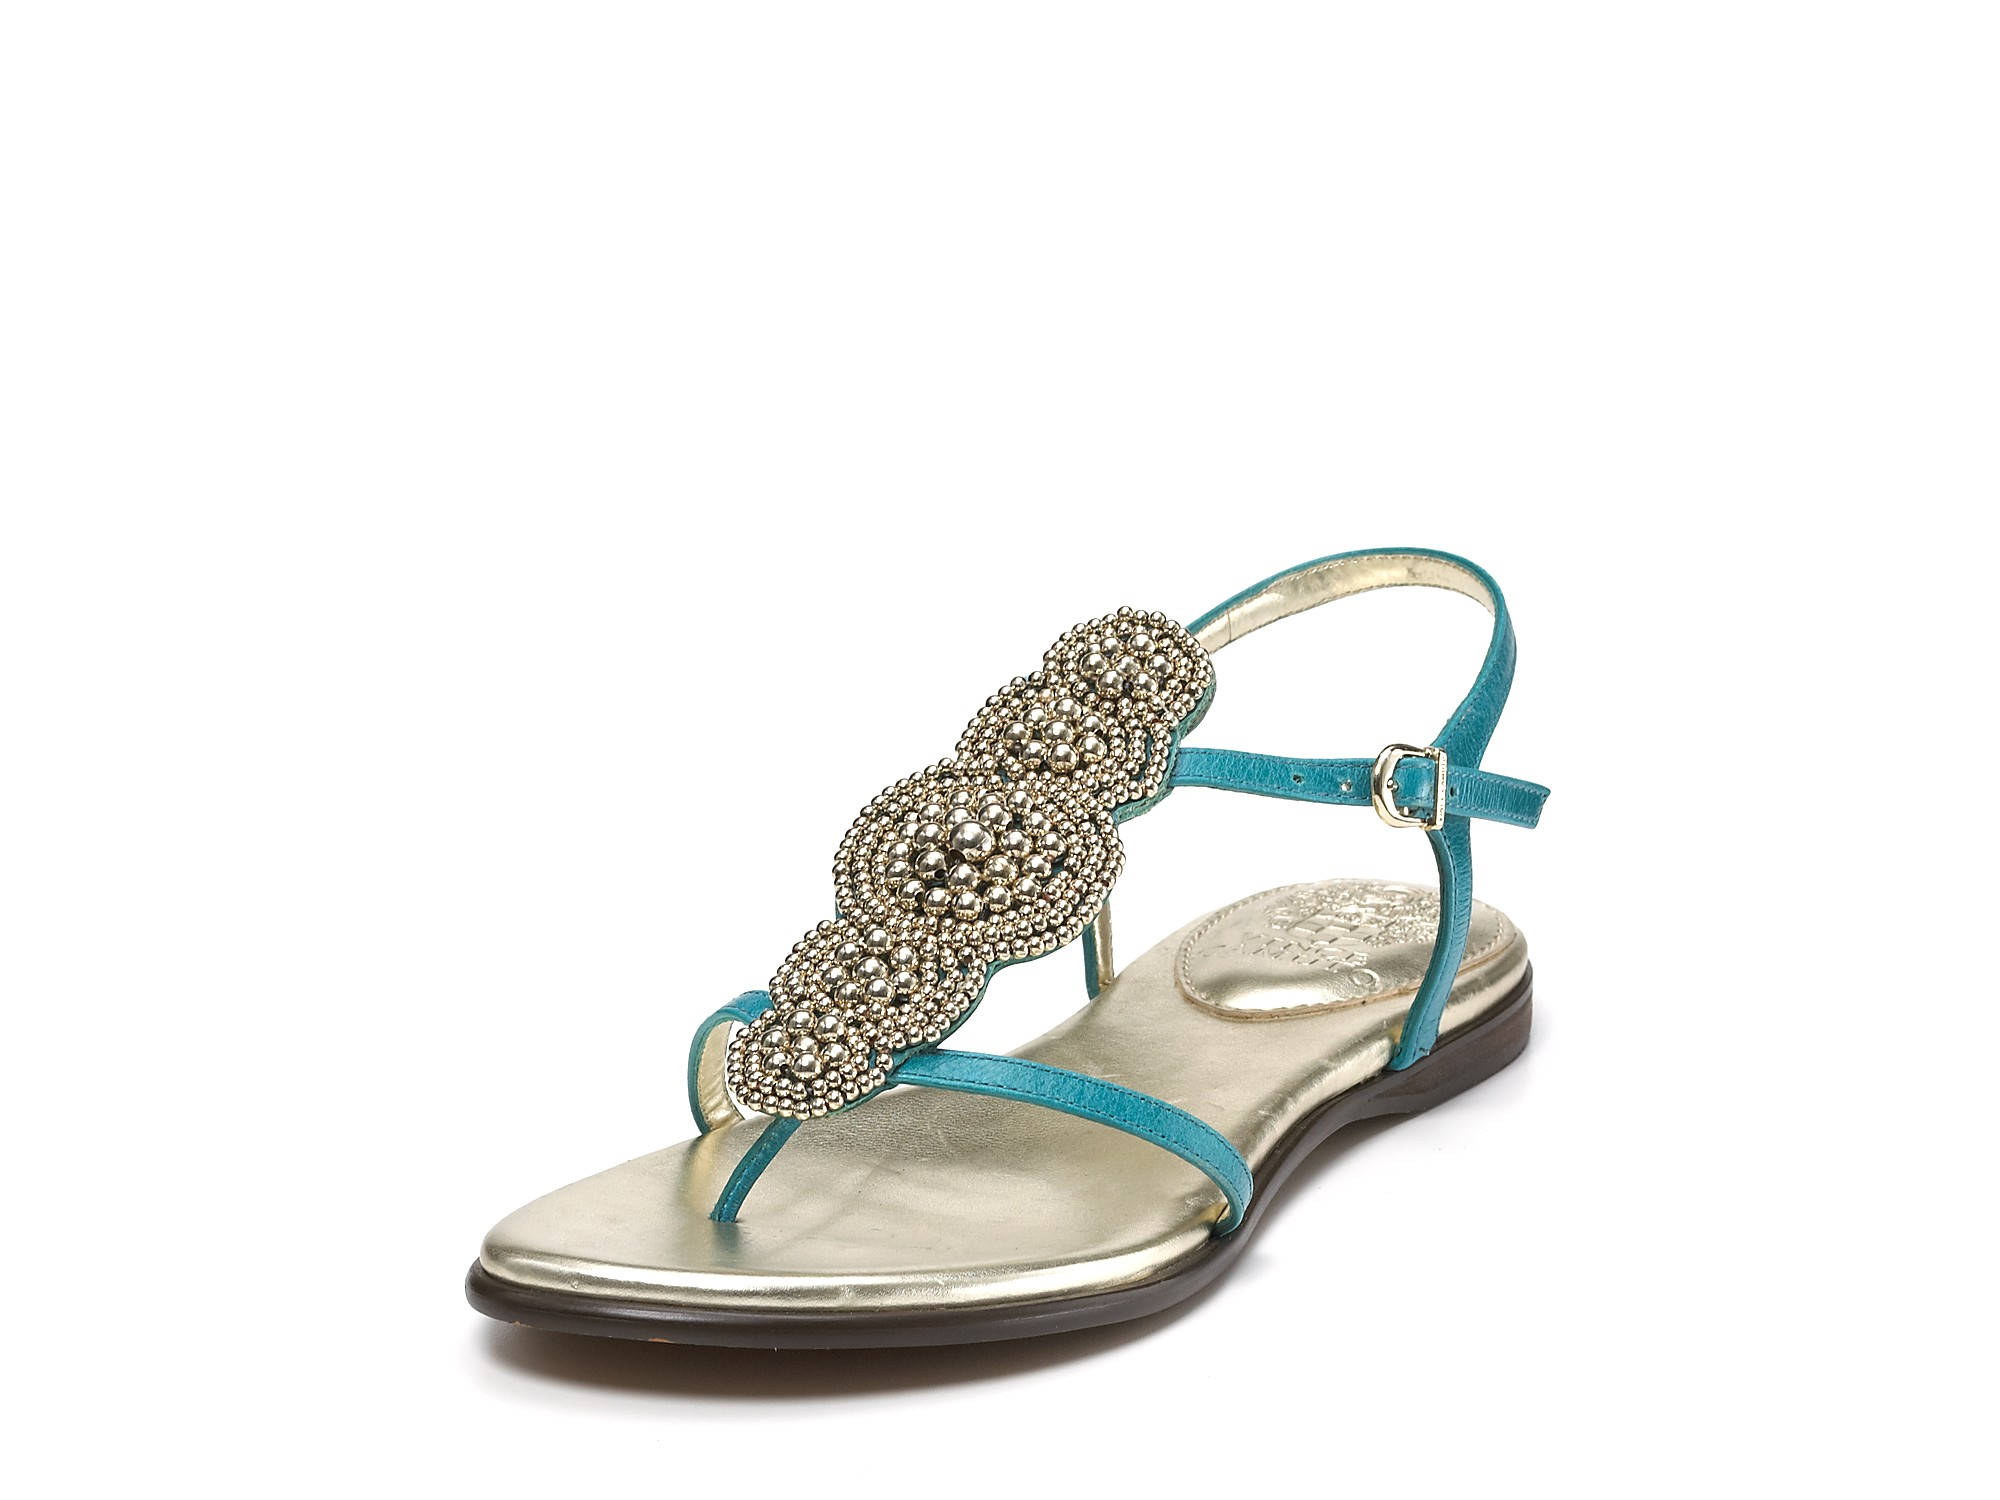 Vince Camuto Sandals Allik Beaded Flat Sandals In Blue Lyst